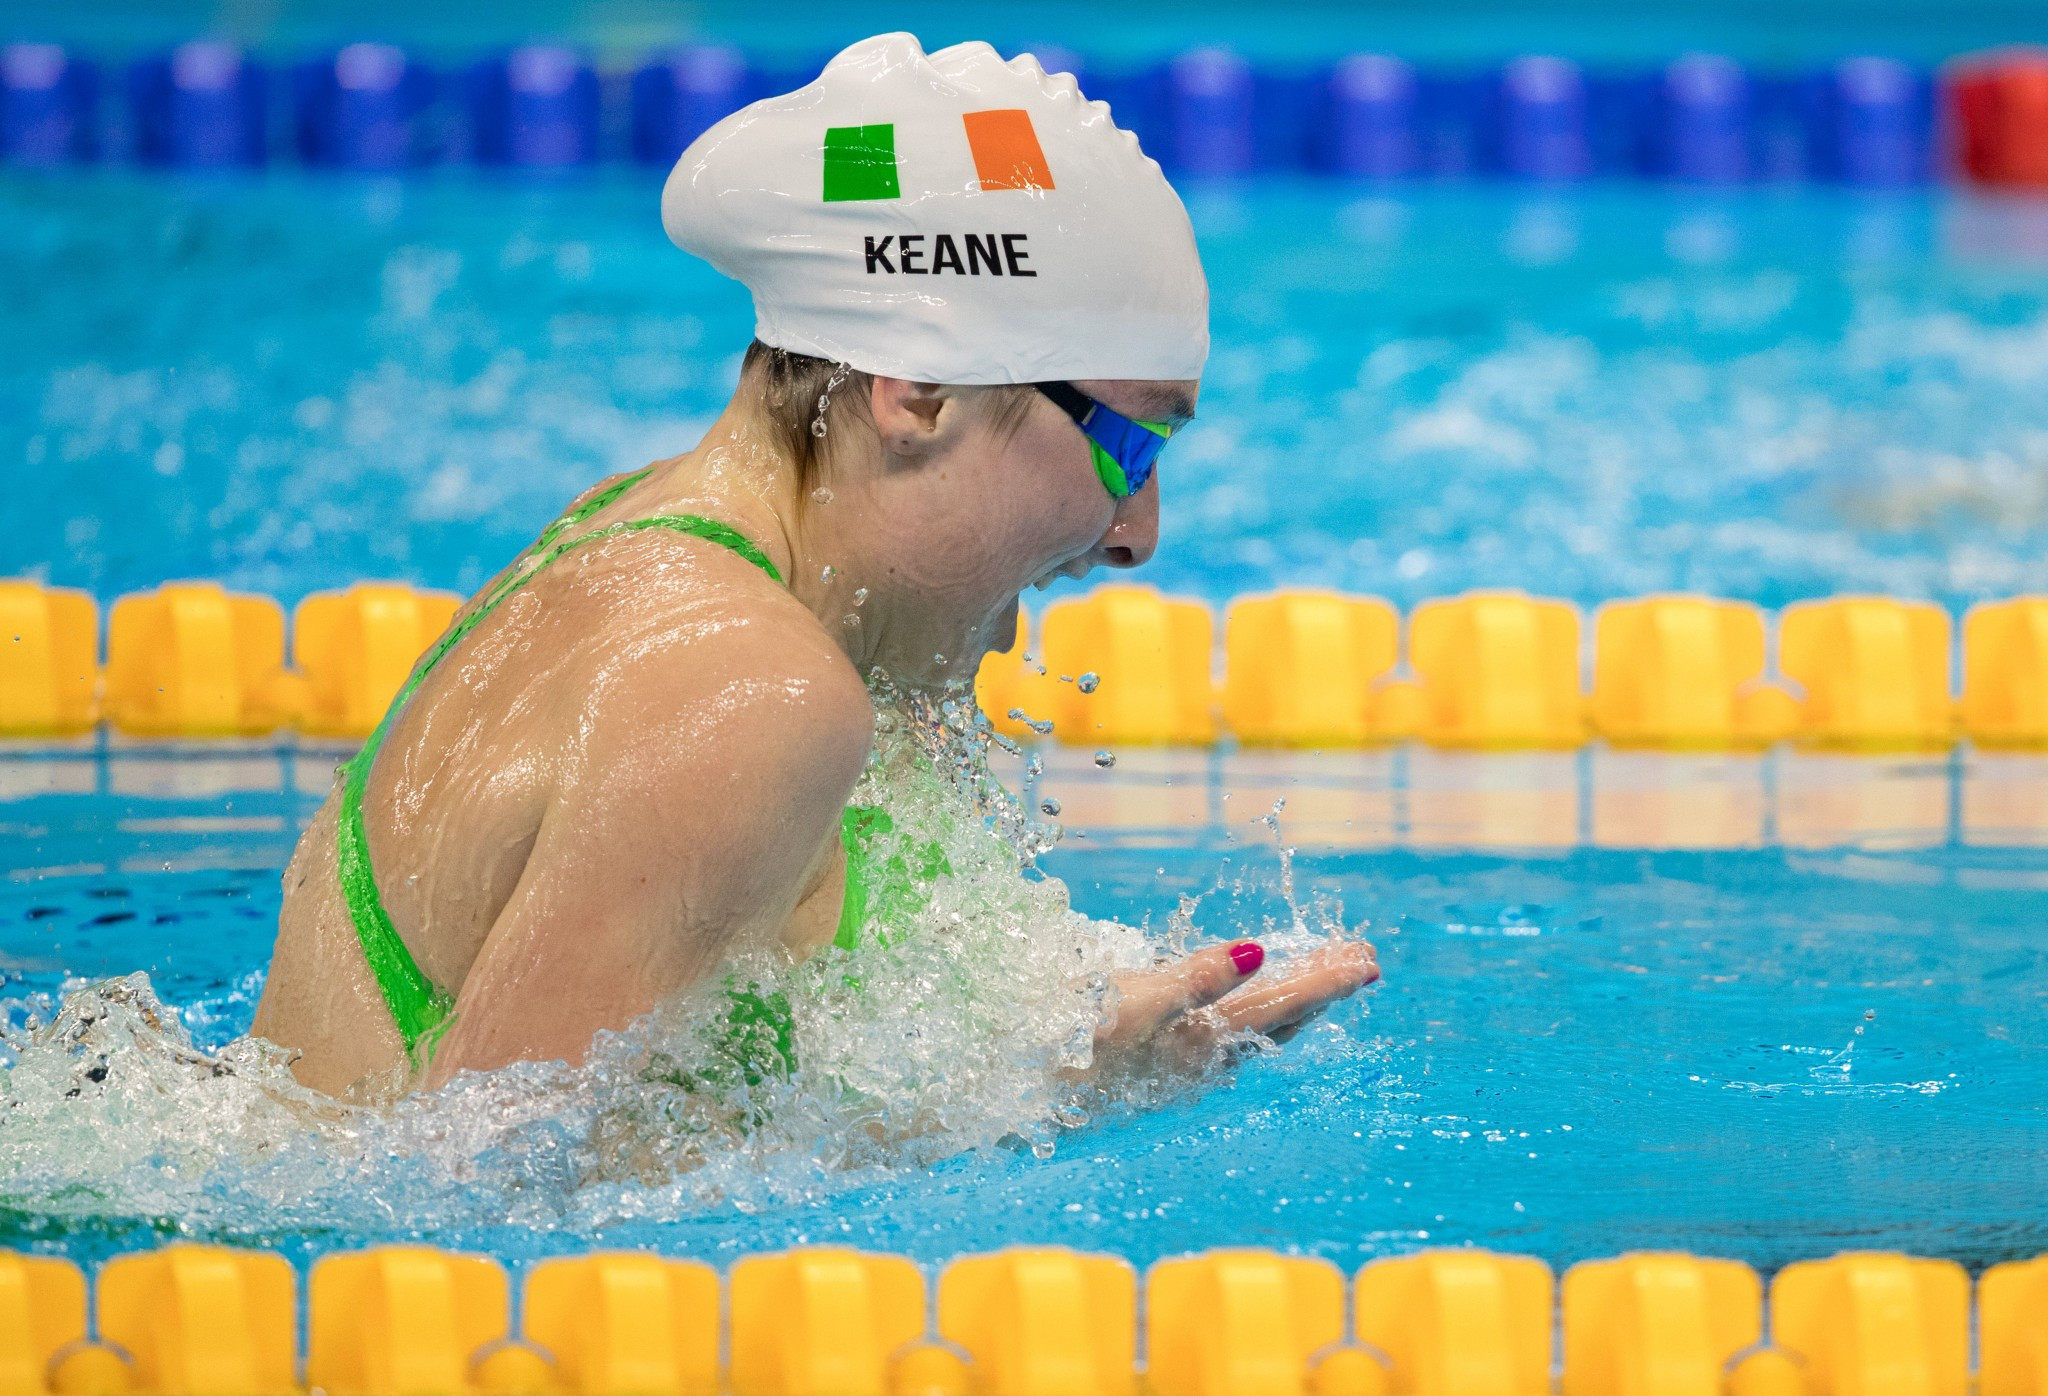 Ellen Keane won Paralympic bronze for Ireland at Rio 2016 ©Getty Images